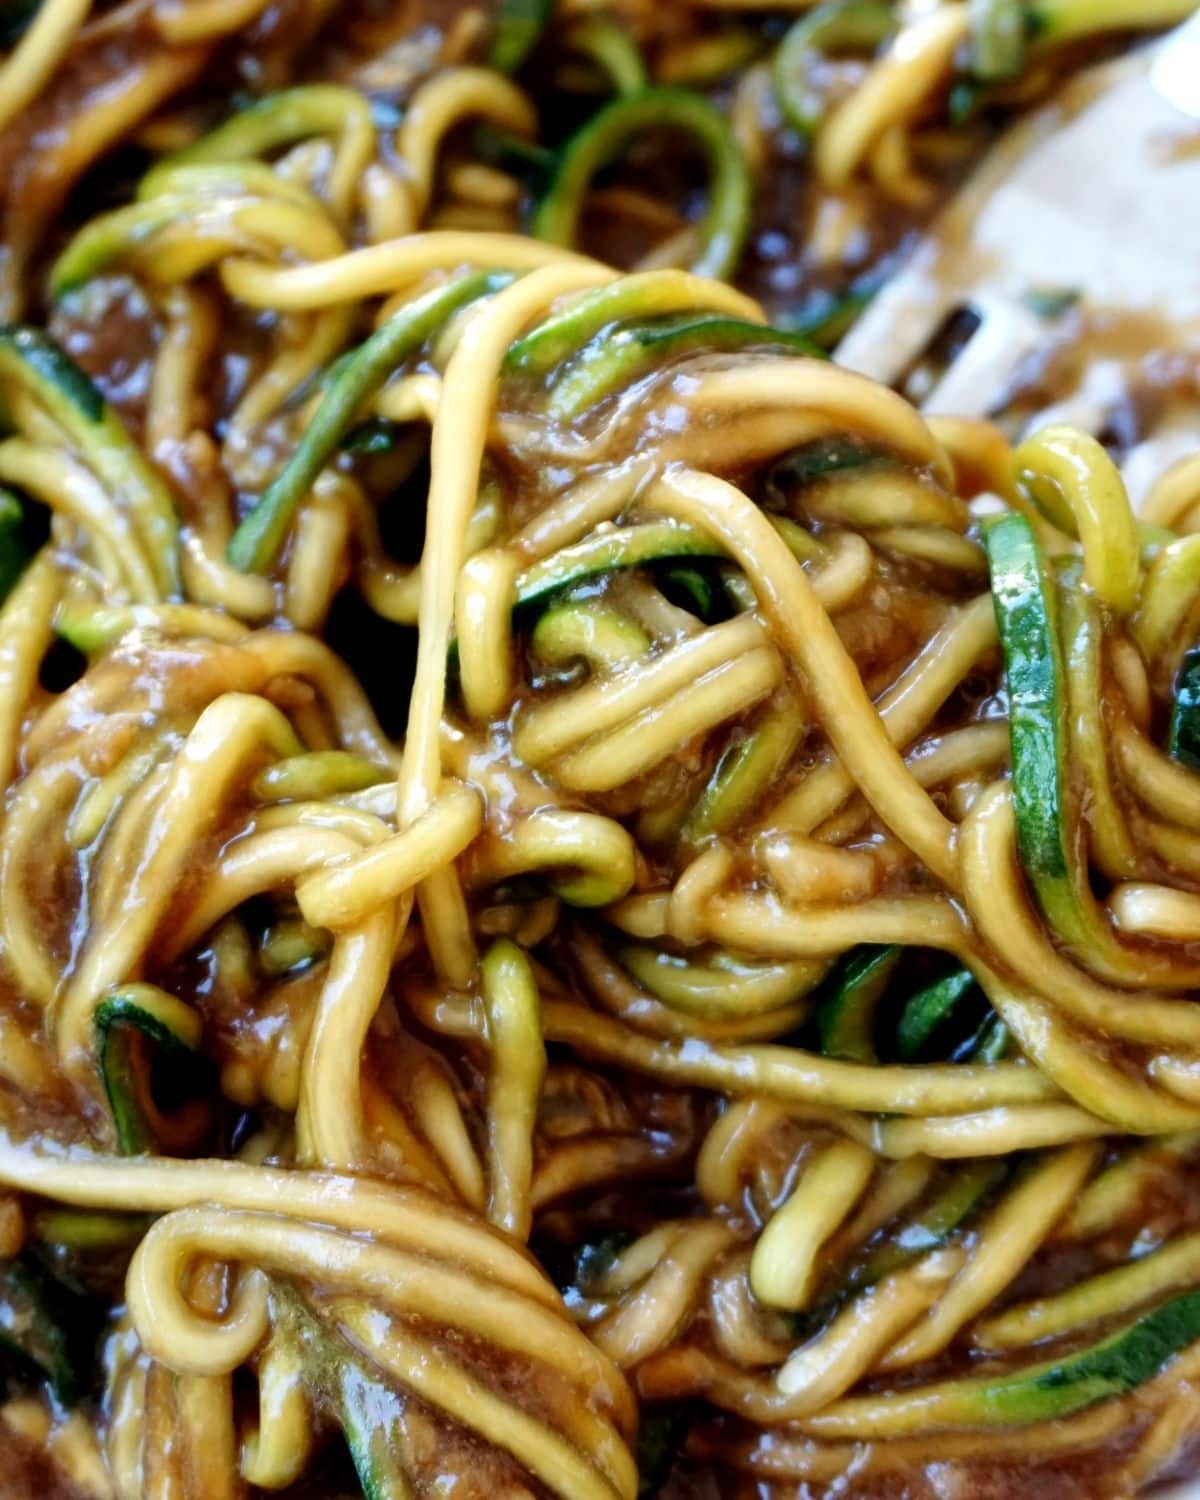 zucchini noodles with Chinese seasonings